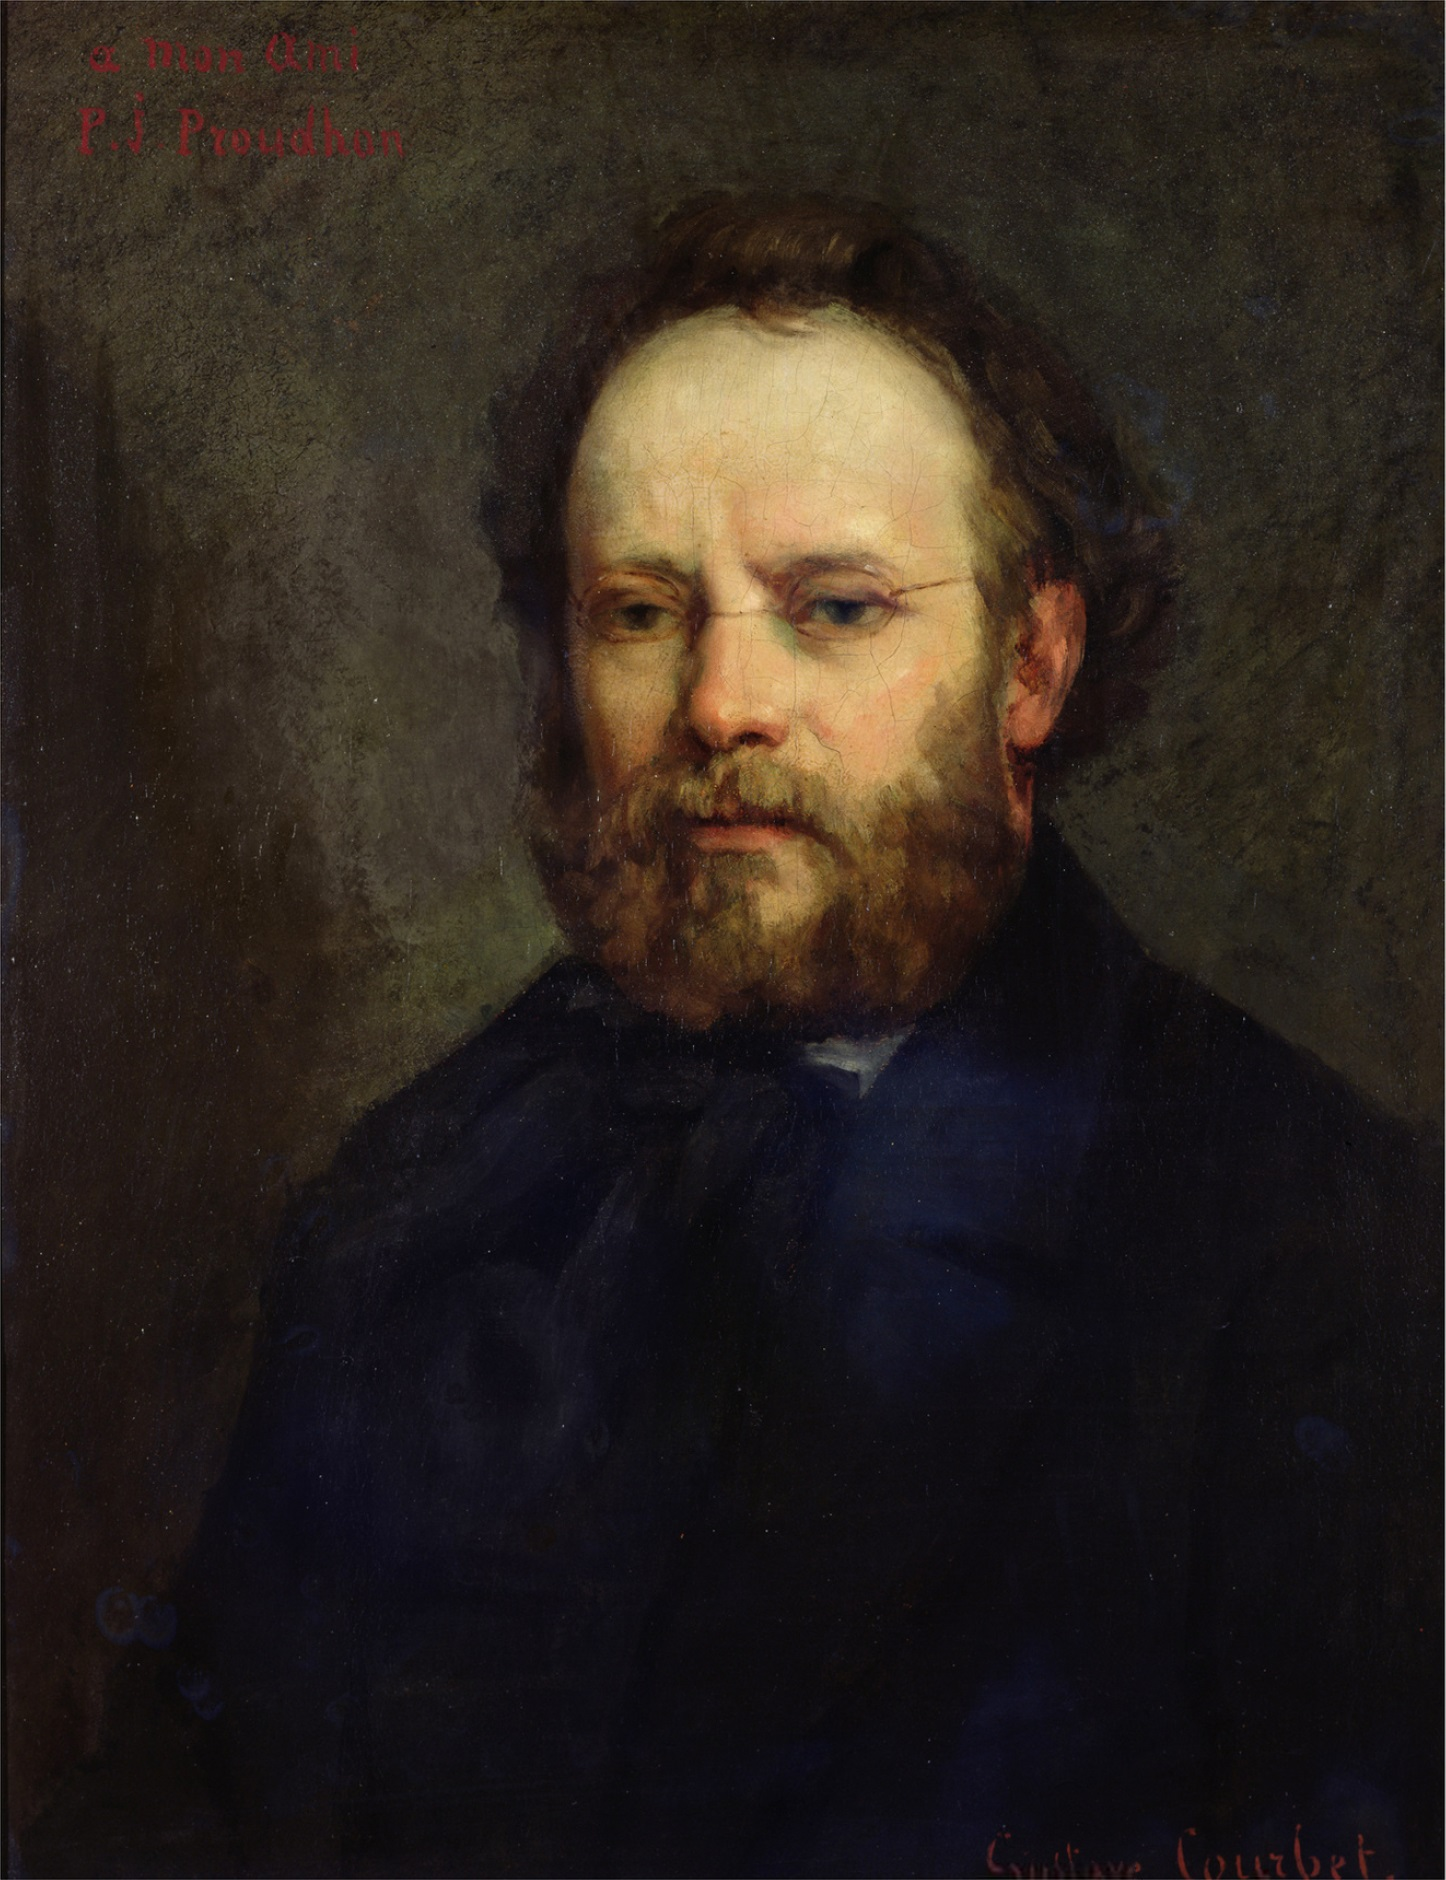 Portrait by [[Gustave Courbet]], 1865